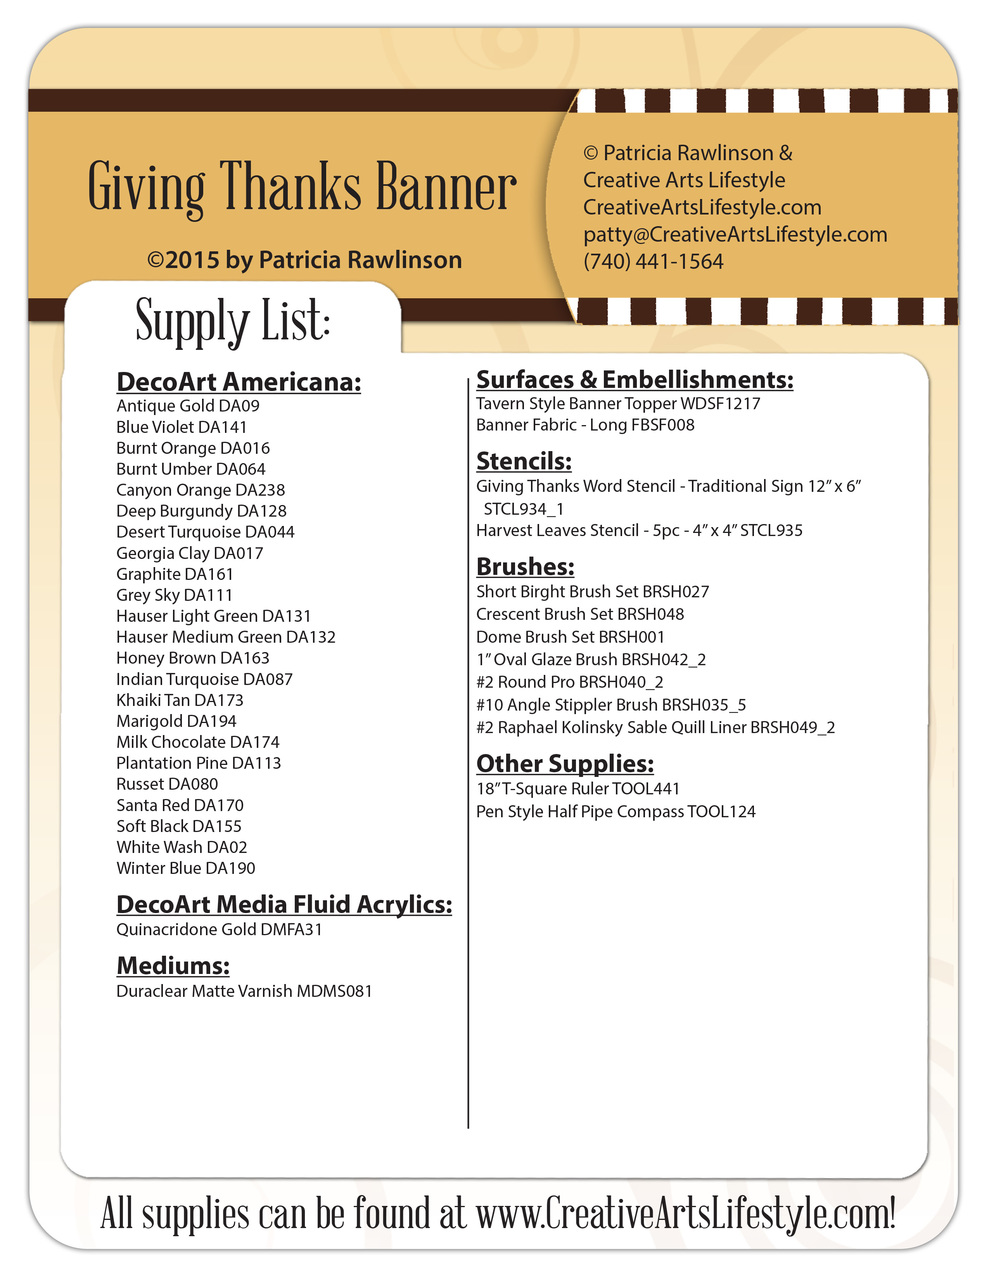 Giving Thanks Banner Pattern Packet - Patricia Rawlinson